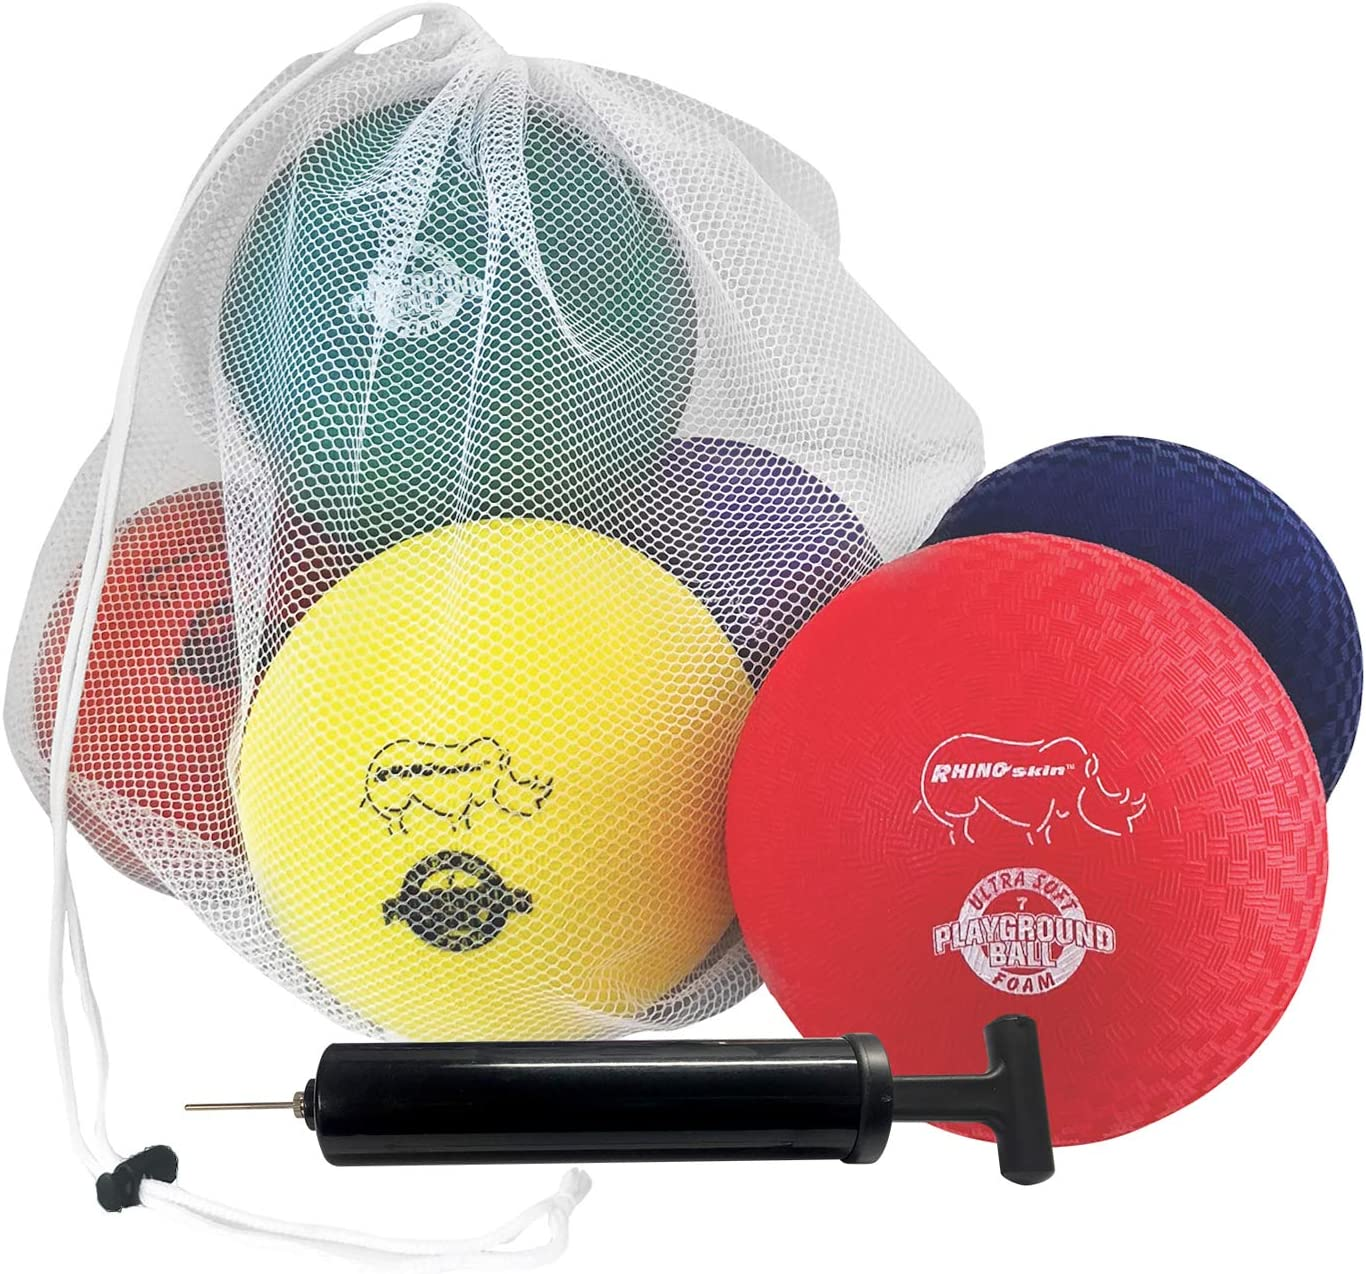 Champion Today's only Sports Playground Ball Set: Six Large I Sales of SALE items from new works Soft Skin Rhino